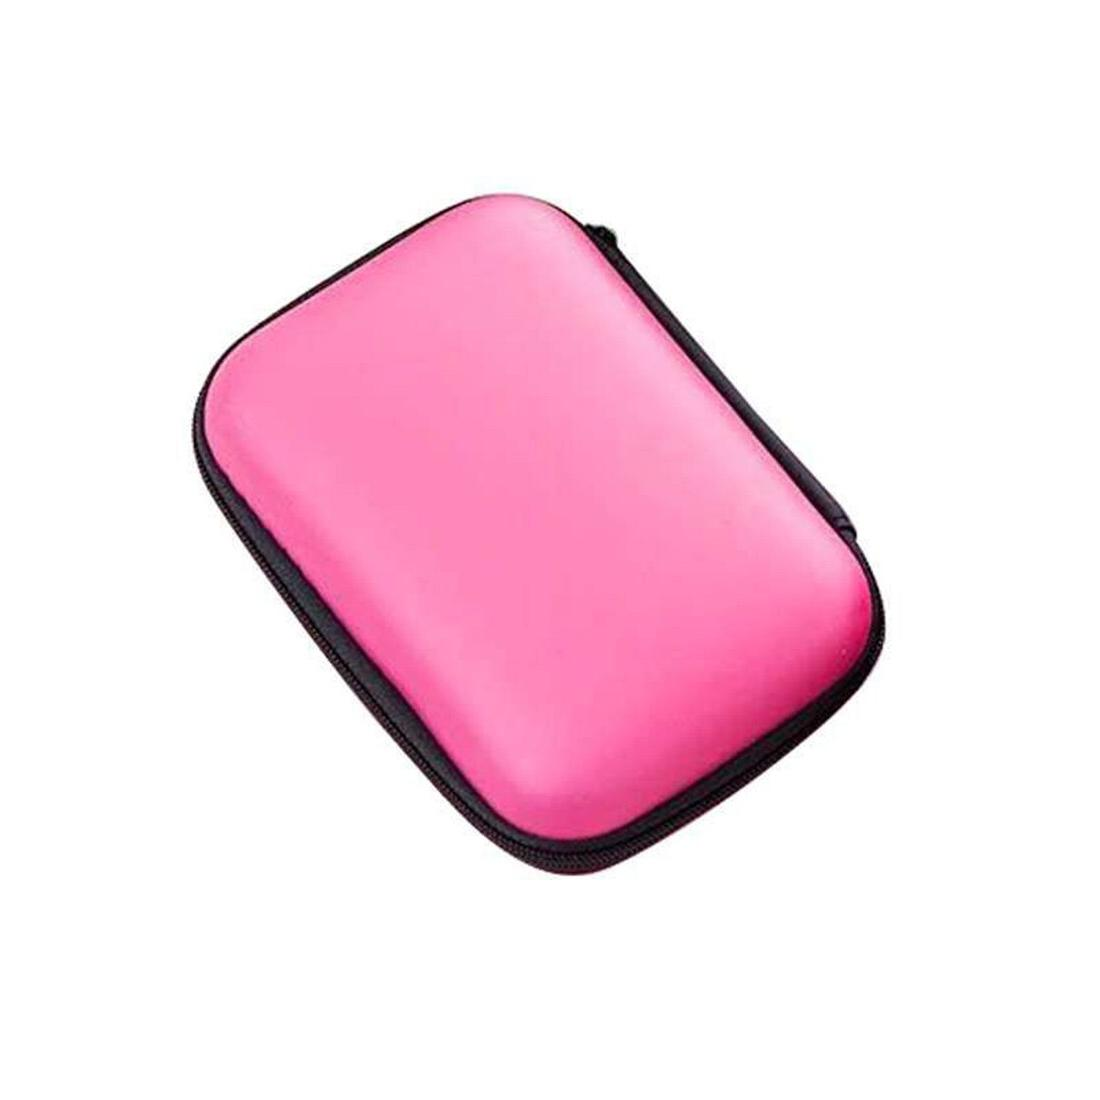 2.5 inch Drive Disk <font><b>Case</b></font> HDD SSD Portable USB Cable Power Bank Box